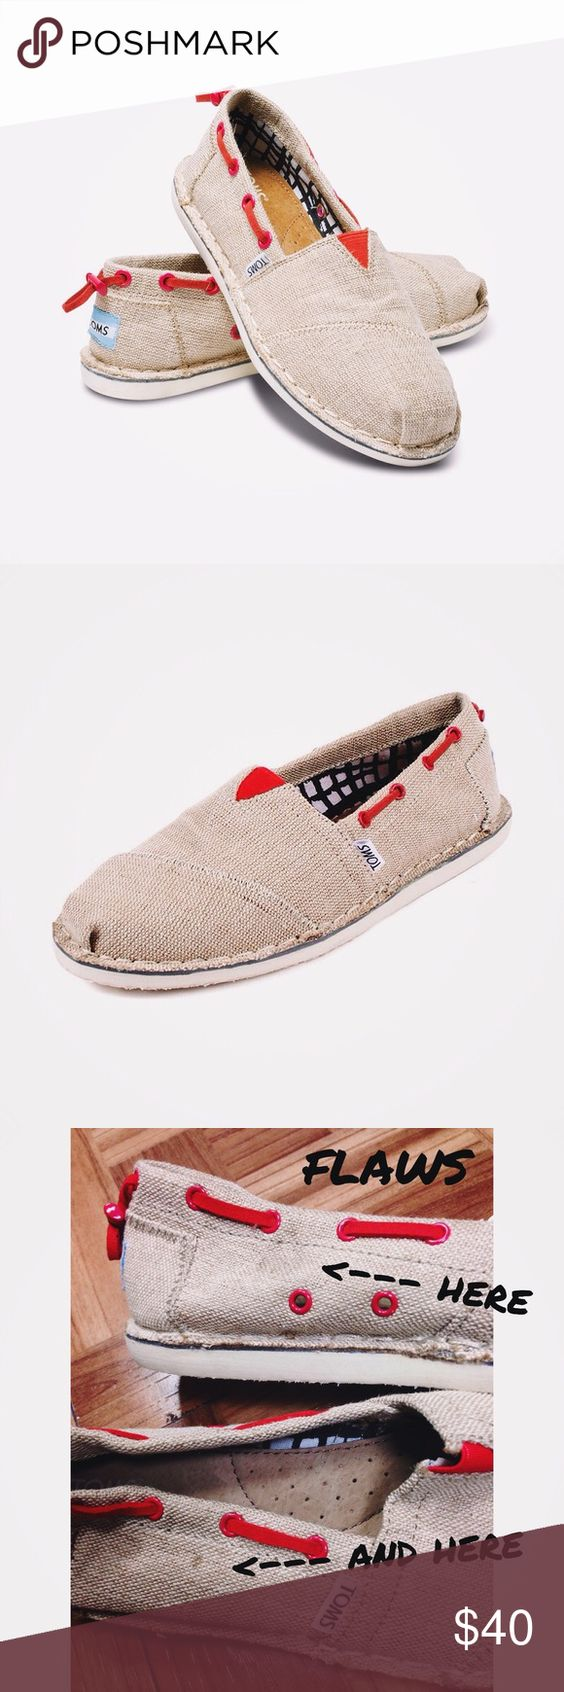 🆕 TOMS Burlap Bimini Stitchout Shoes (Size 8) NWT These beautiful TOMS come brand new with tags (without the box) and were originally sold for $64. They're made of a rugged burlap material and feature red accents. The edges of the shoes are purposely frayed. There is some VERY minor discoloration, as shown in the 3rd photo. If you have any questions, please let me know!  🚫NO trades.🚫 ✅Feel free to make me an offer! Please note that I only consider offers that are made through Poshmark's…